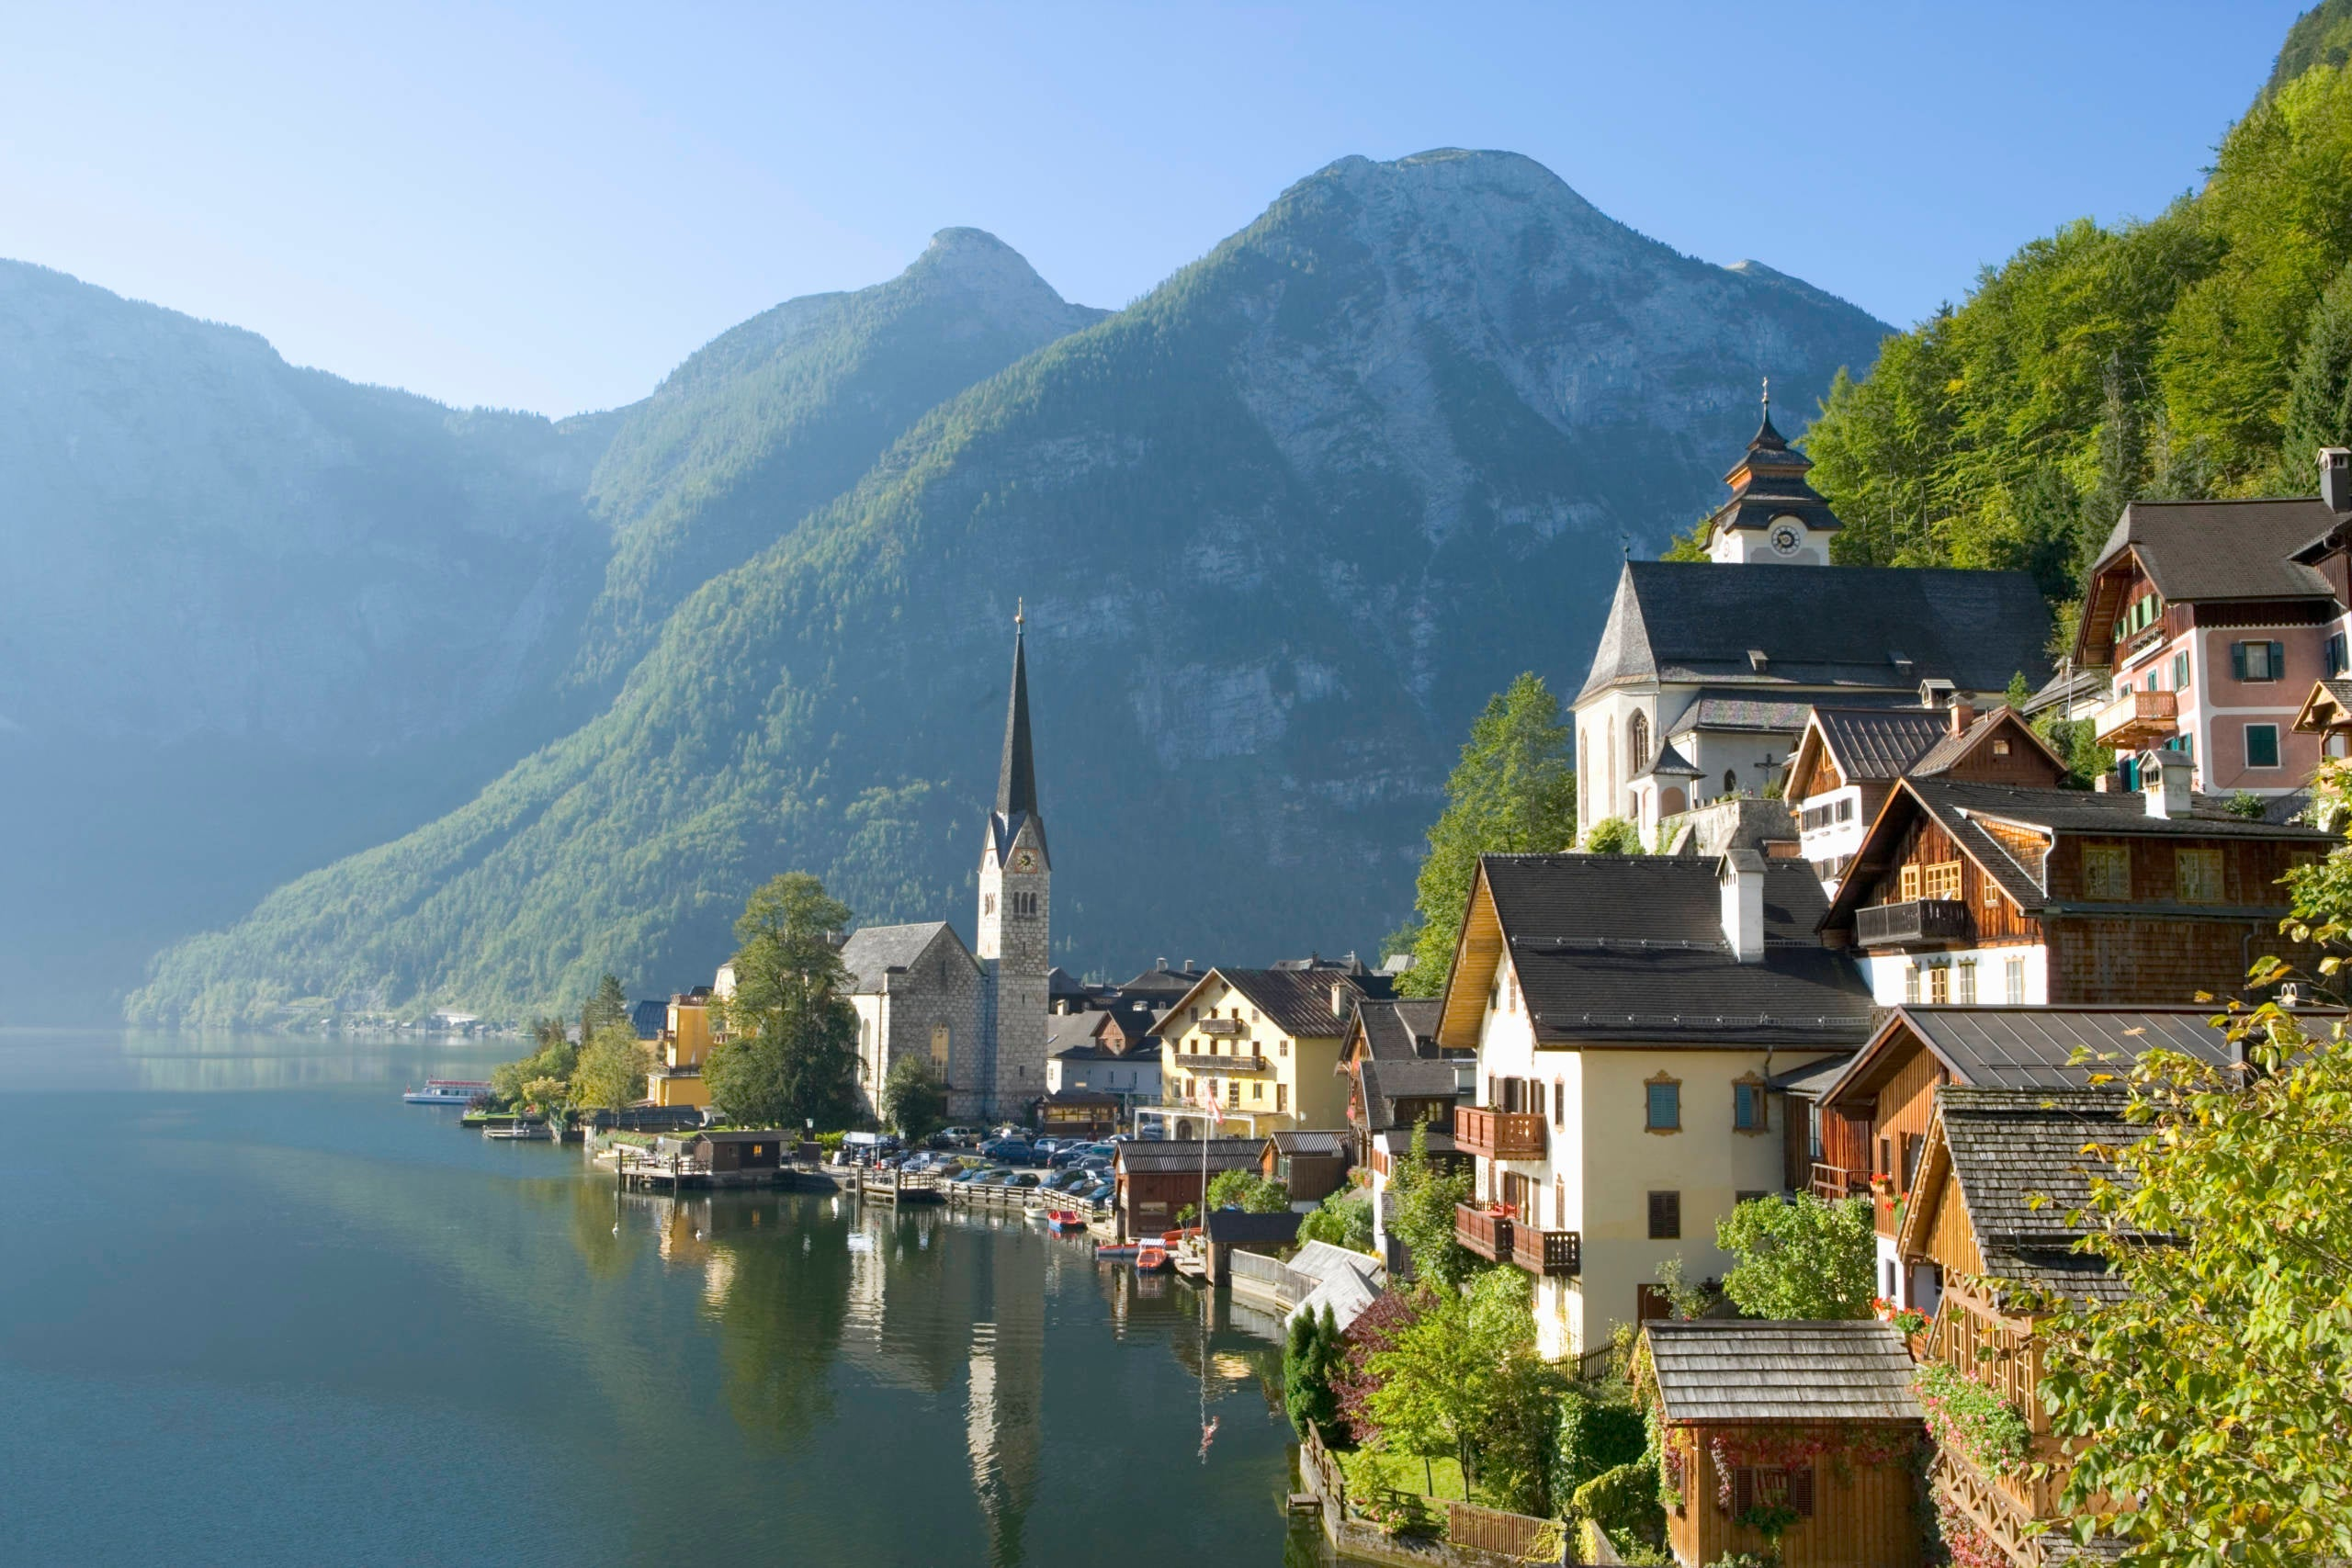 TPG readers' top tips for Austria - The Points Guy